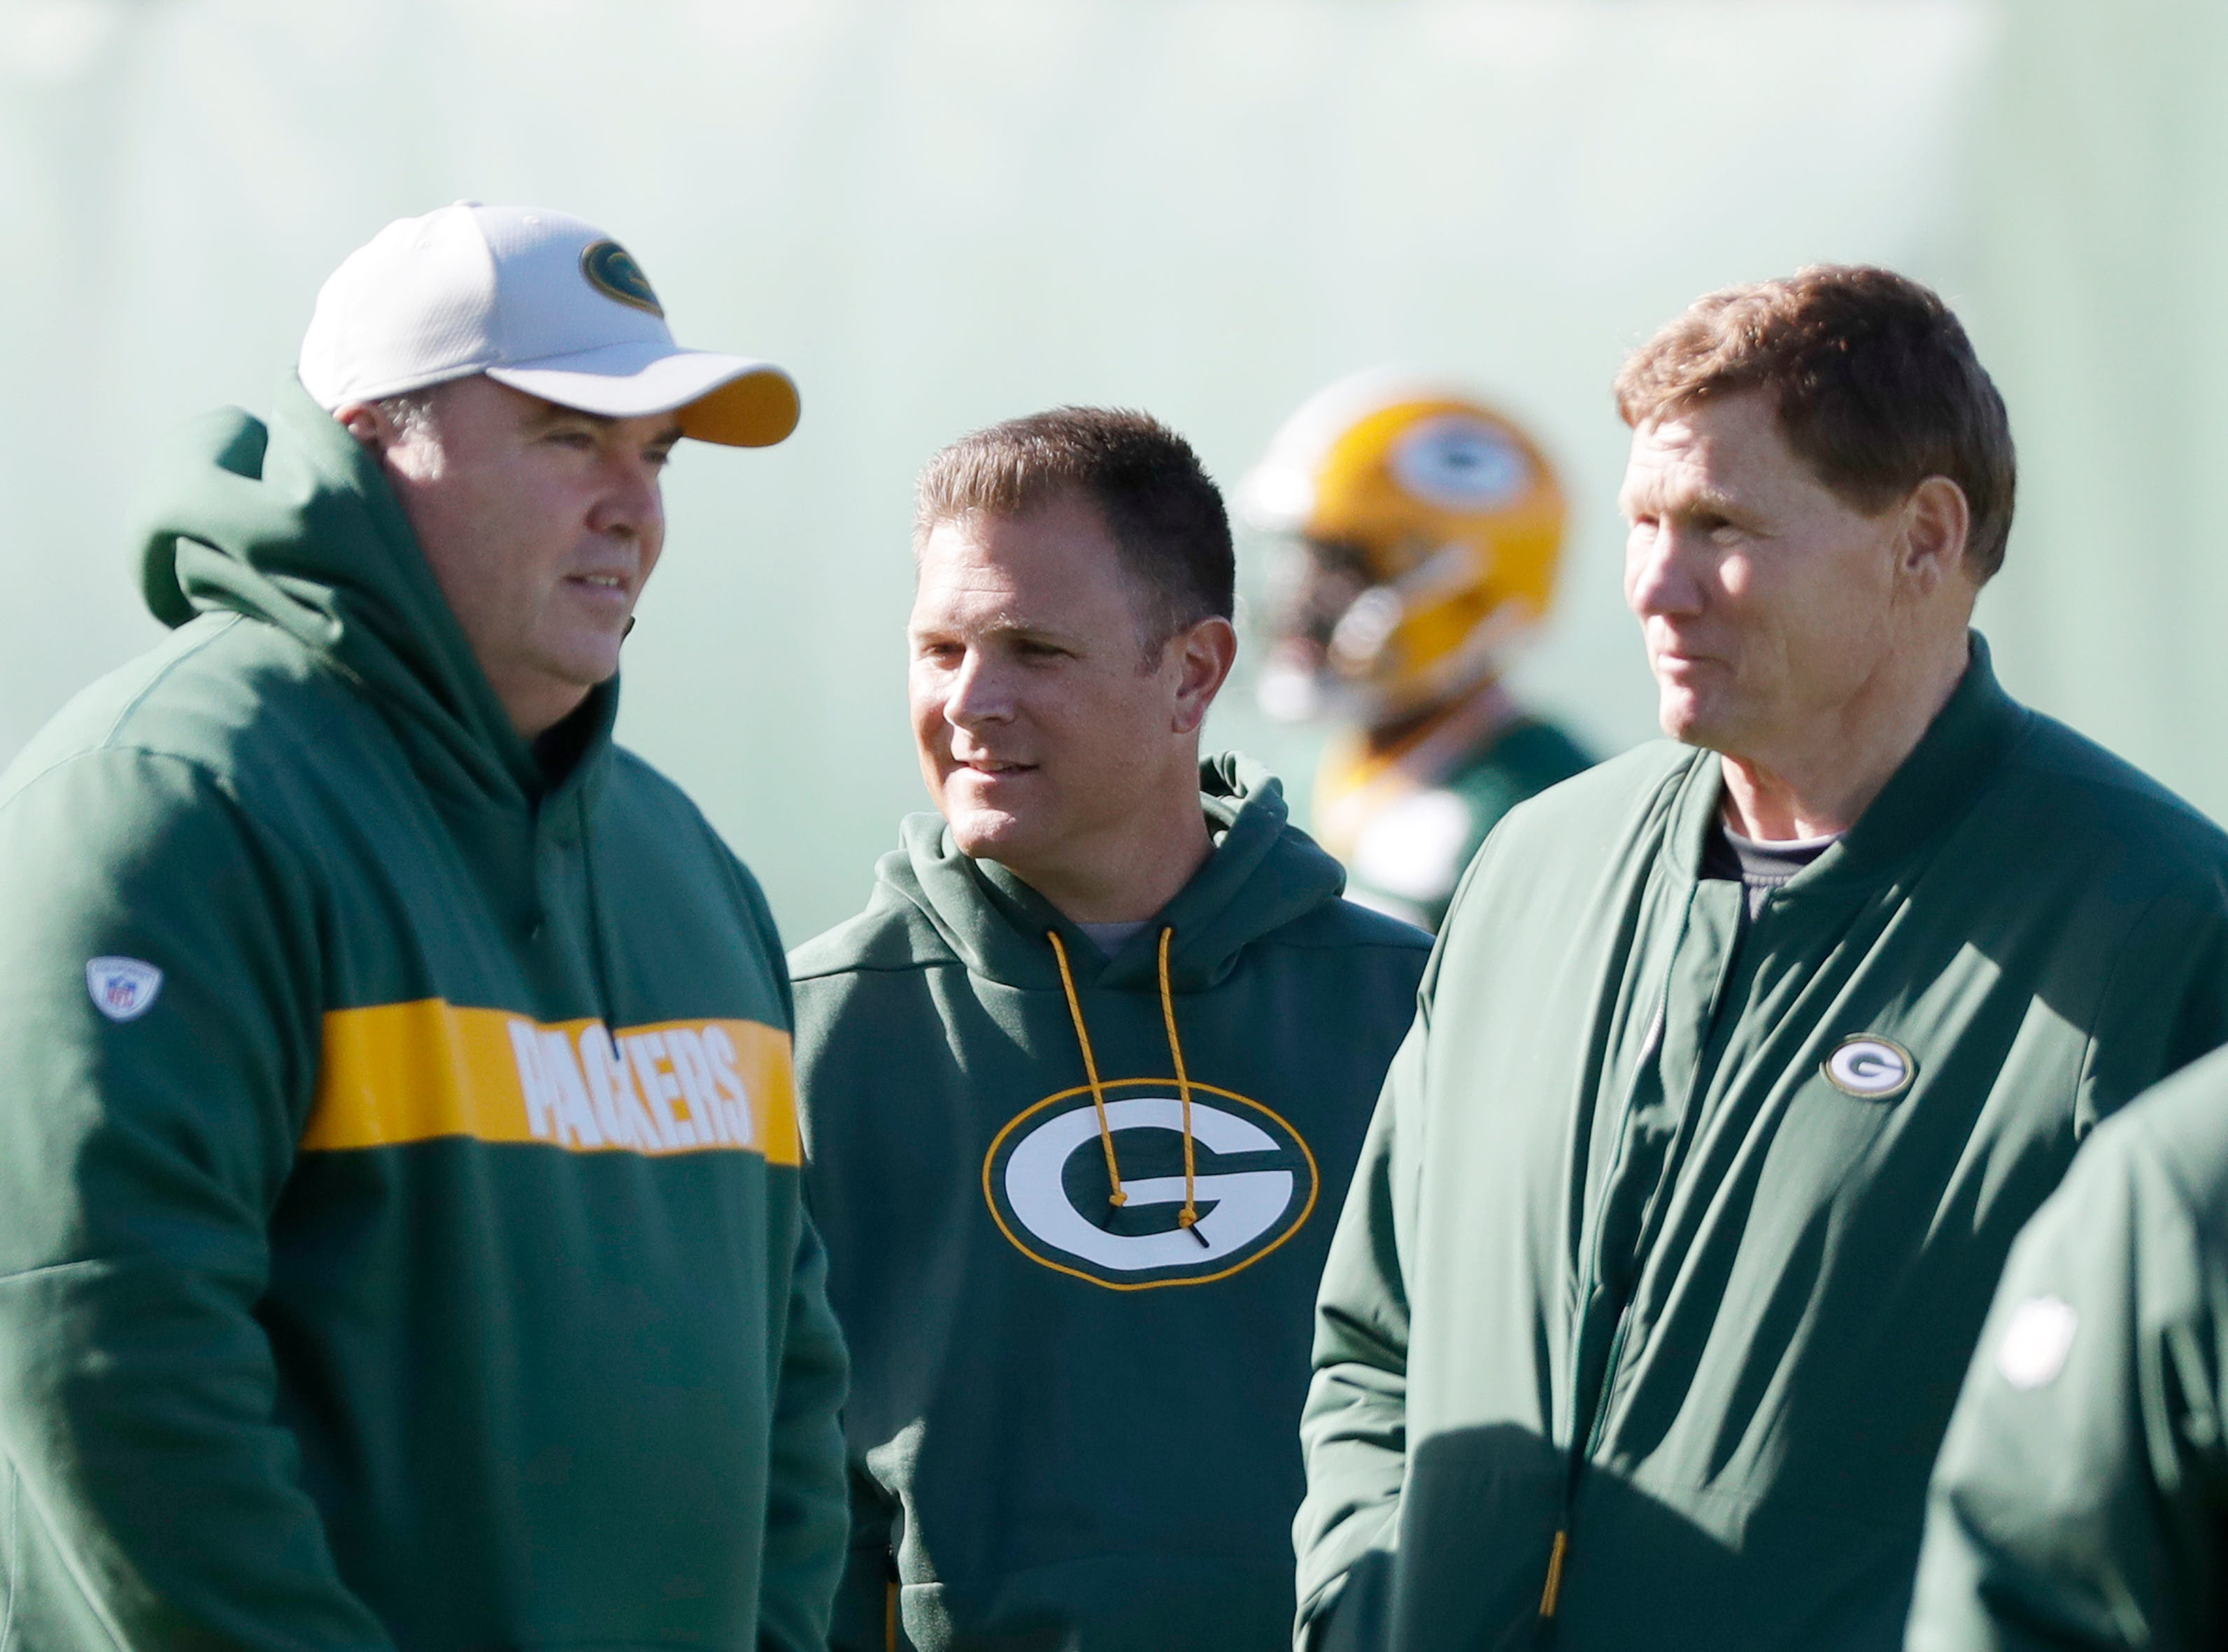 Green Bay Packers GM watches practice with head coach Mike McCarthy and CEO Mark Murphy at Ray Nitschke Field on Wednesday, October 31, 2018 in Ashwaubenon, Wis.